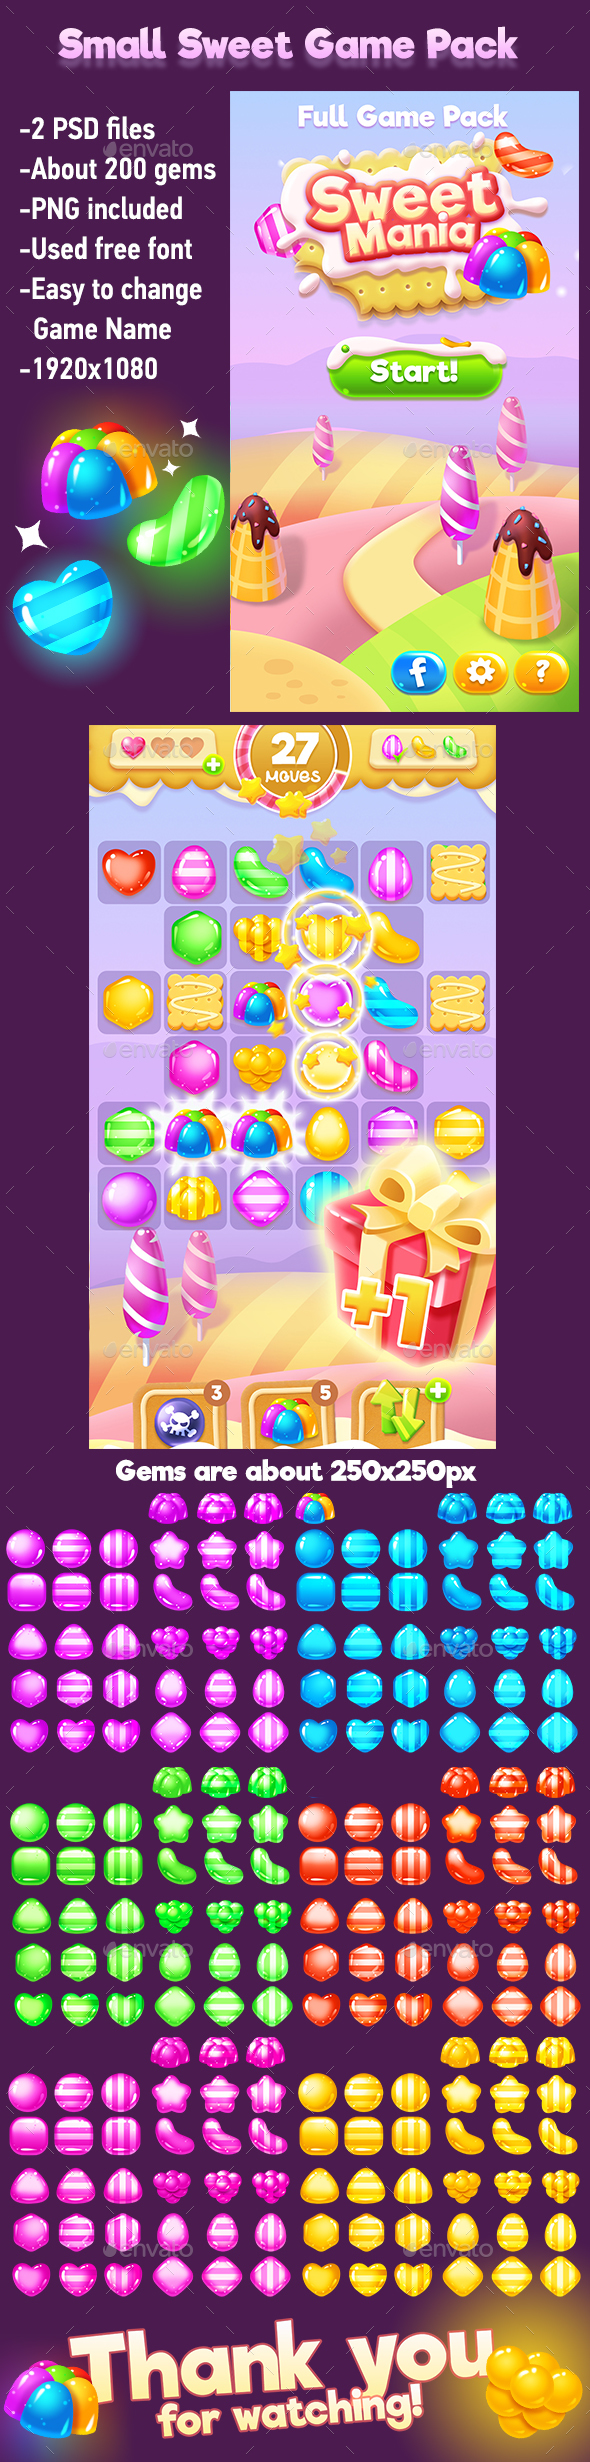 Small Sweets Game Pack with Game Gems - Game Kits Game Assets